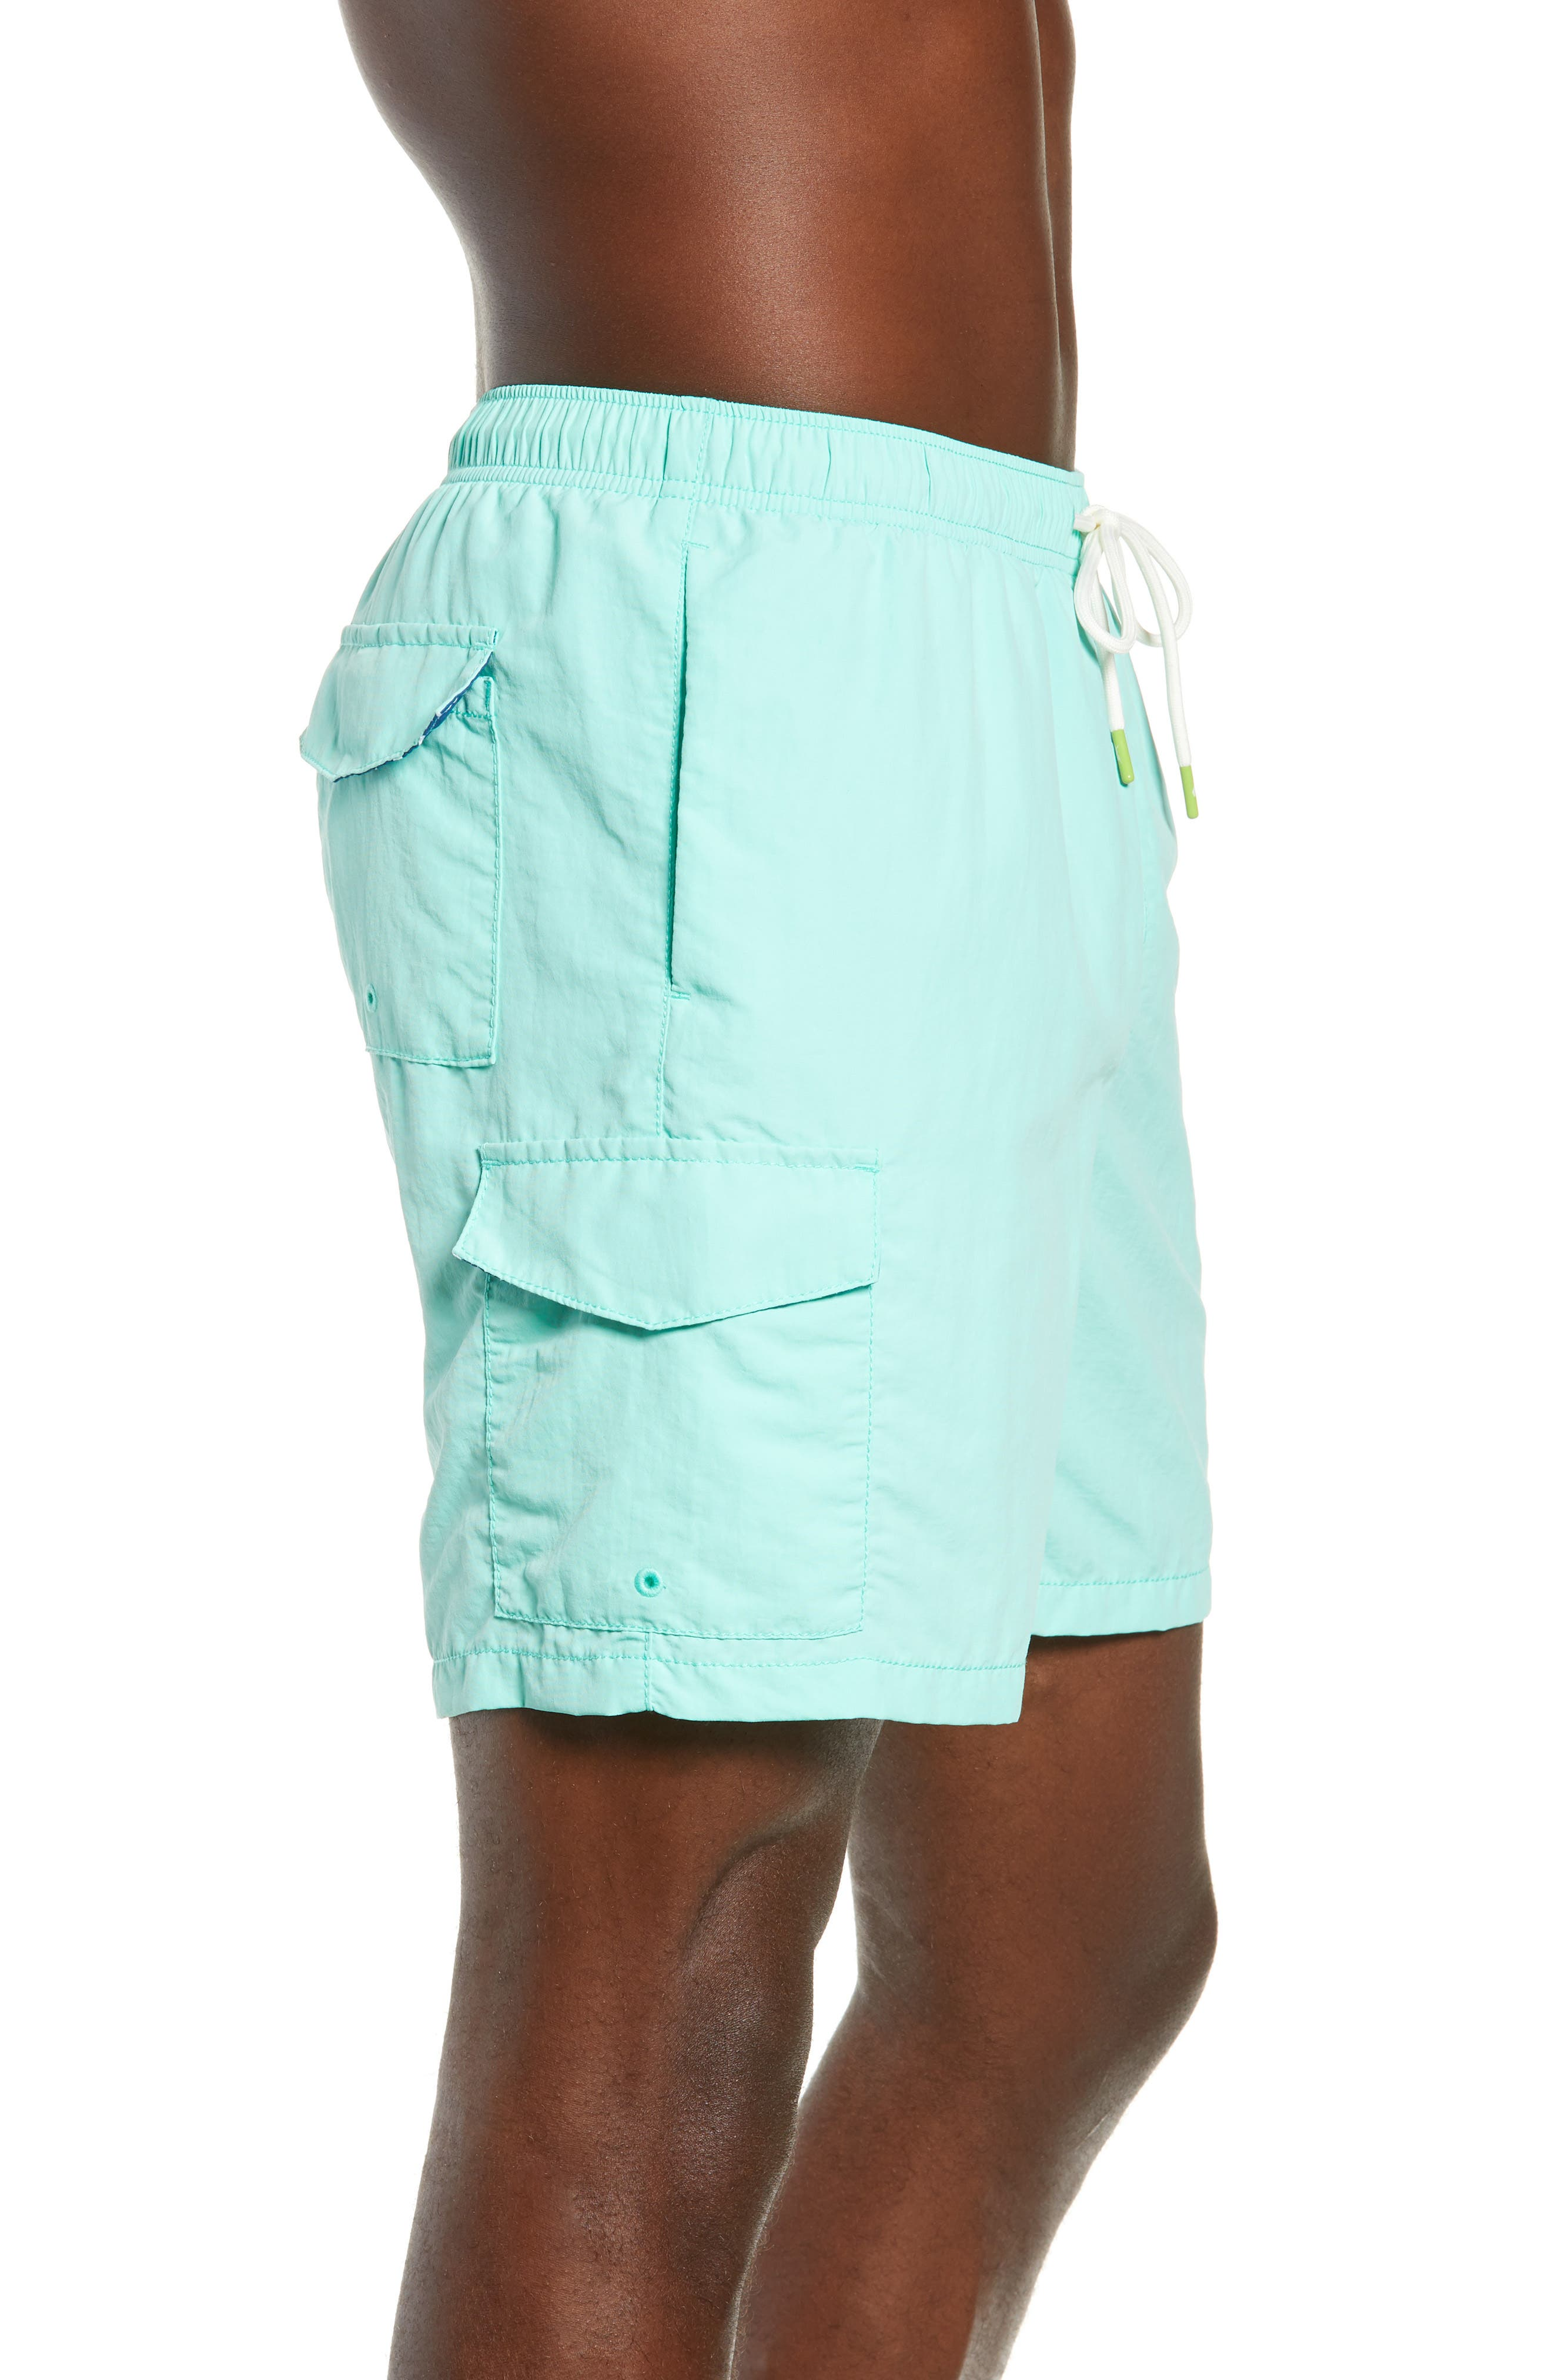 Naples Coast Swim Trunks,                             Alternate thumbnail 3, color,                             302